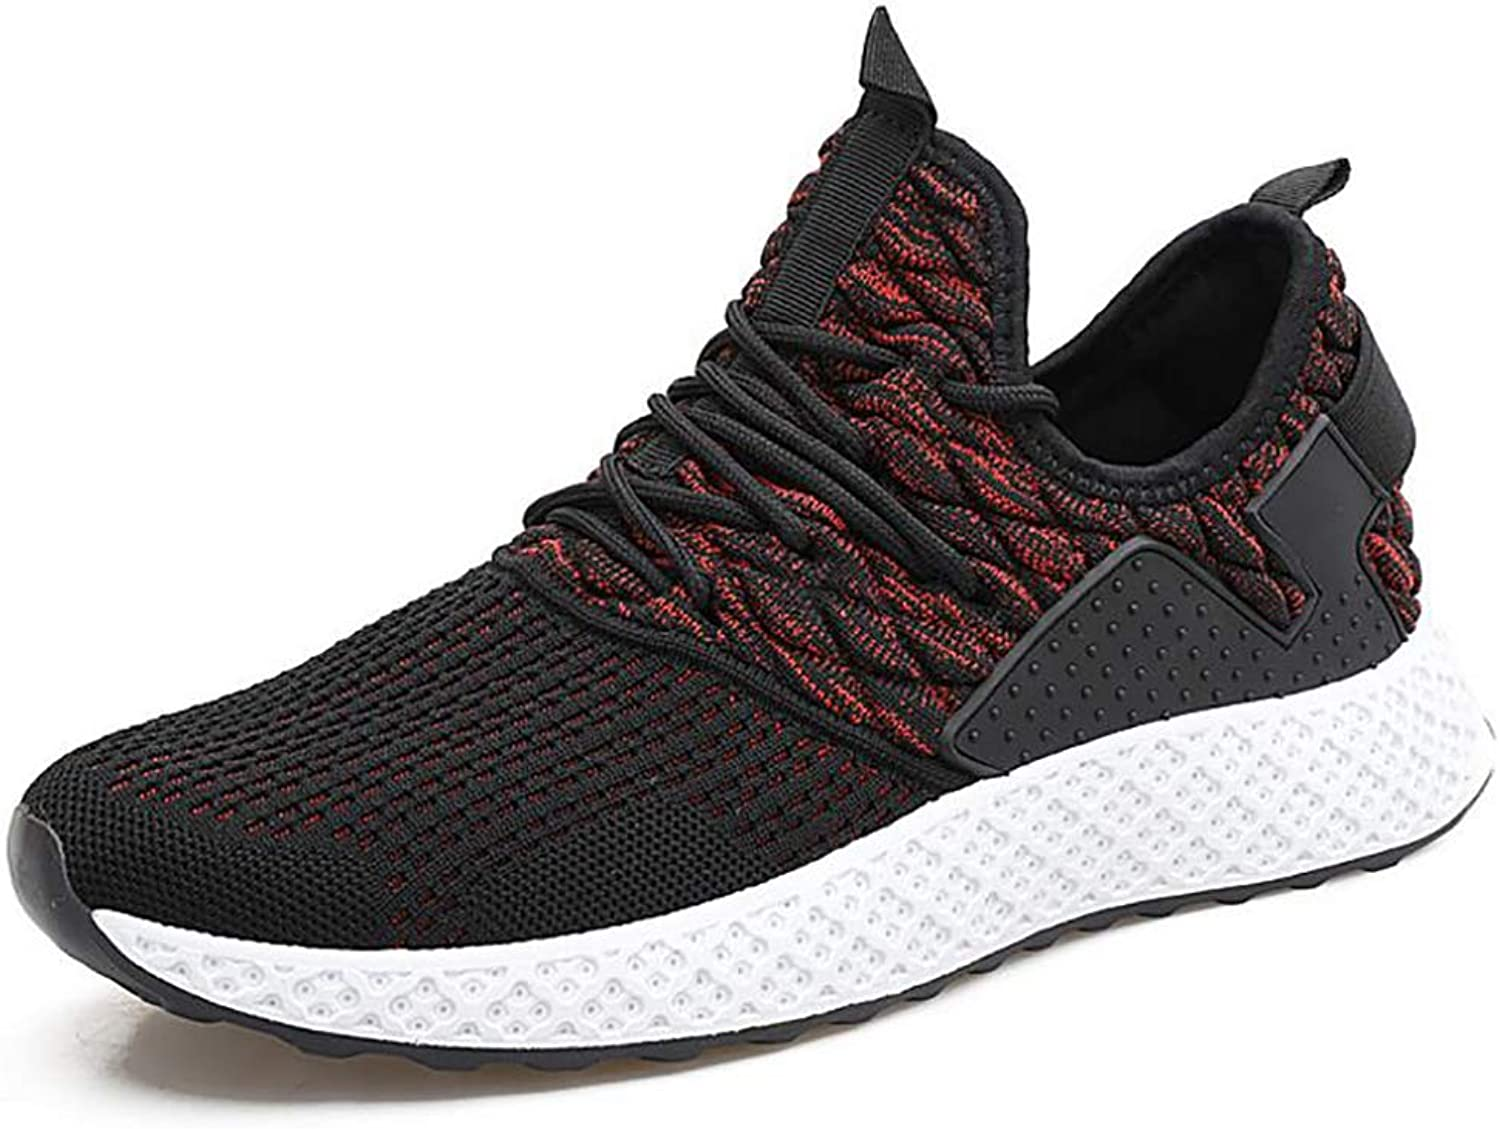 Sneakers Men's Flying Woven Breathable Casual Mesh shoes Trend Black Low To Help Jogging Men's shoes